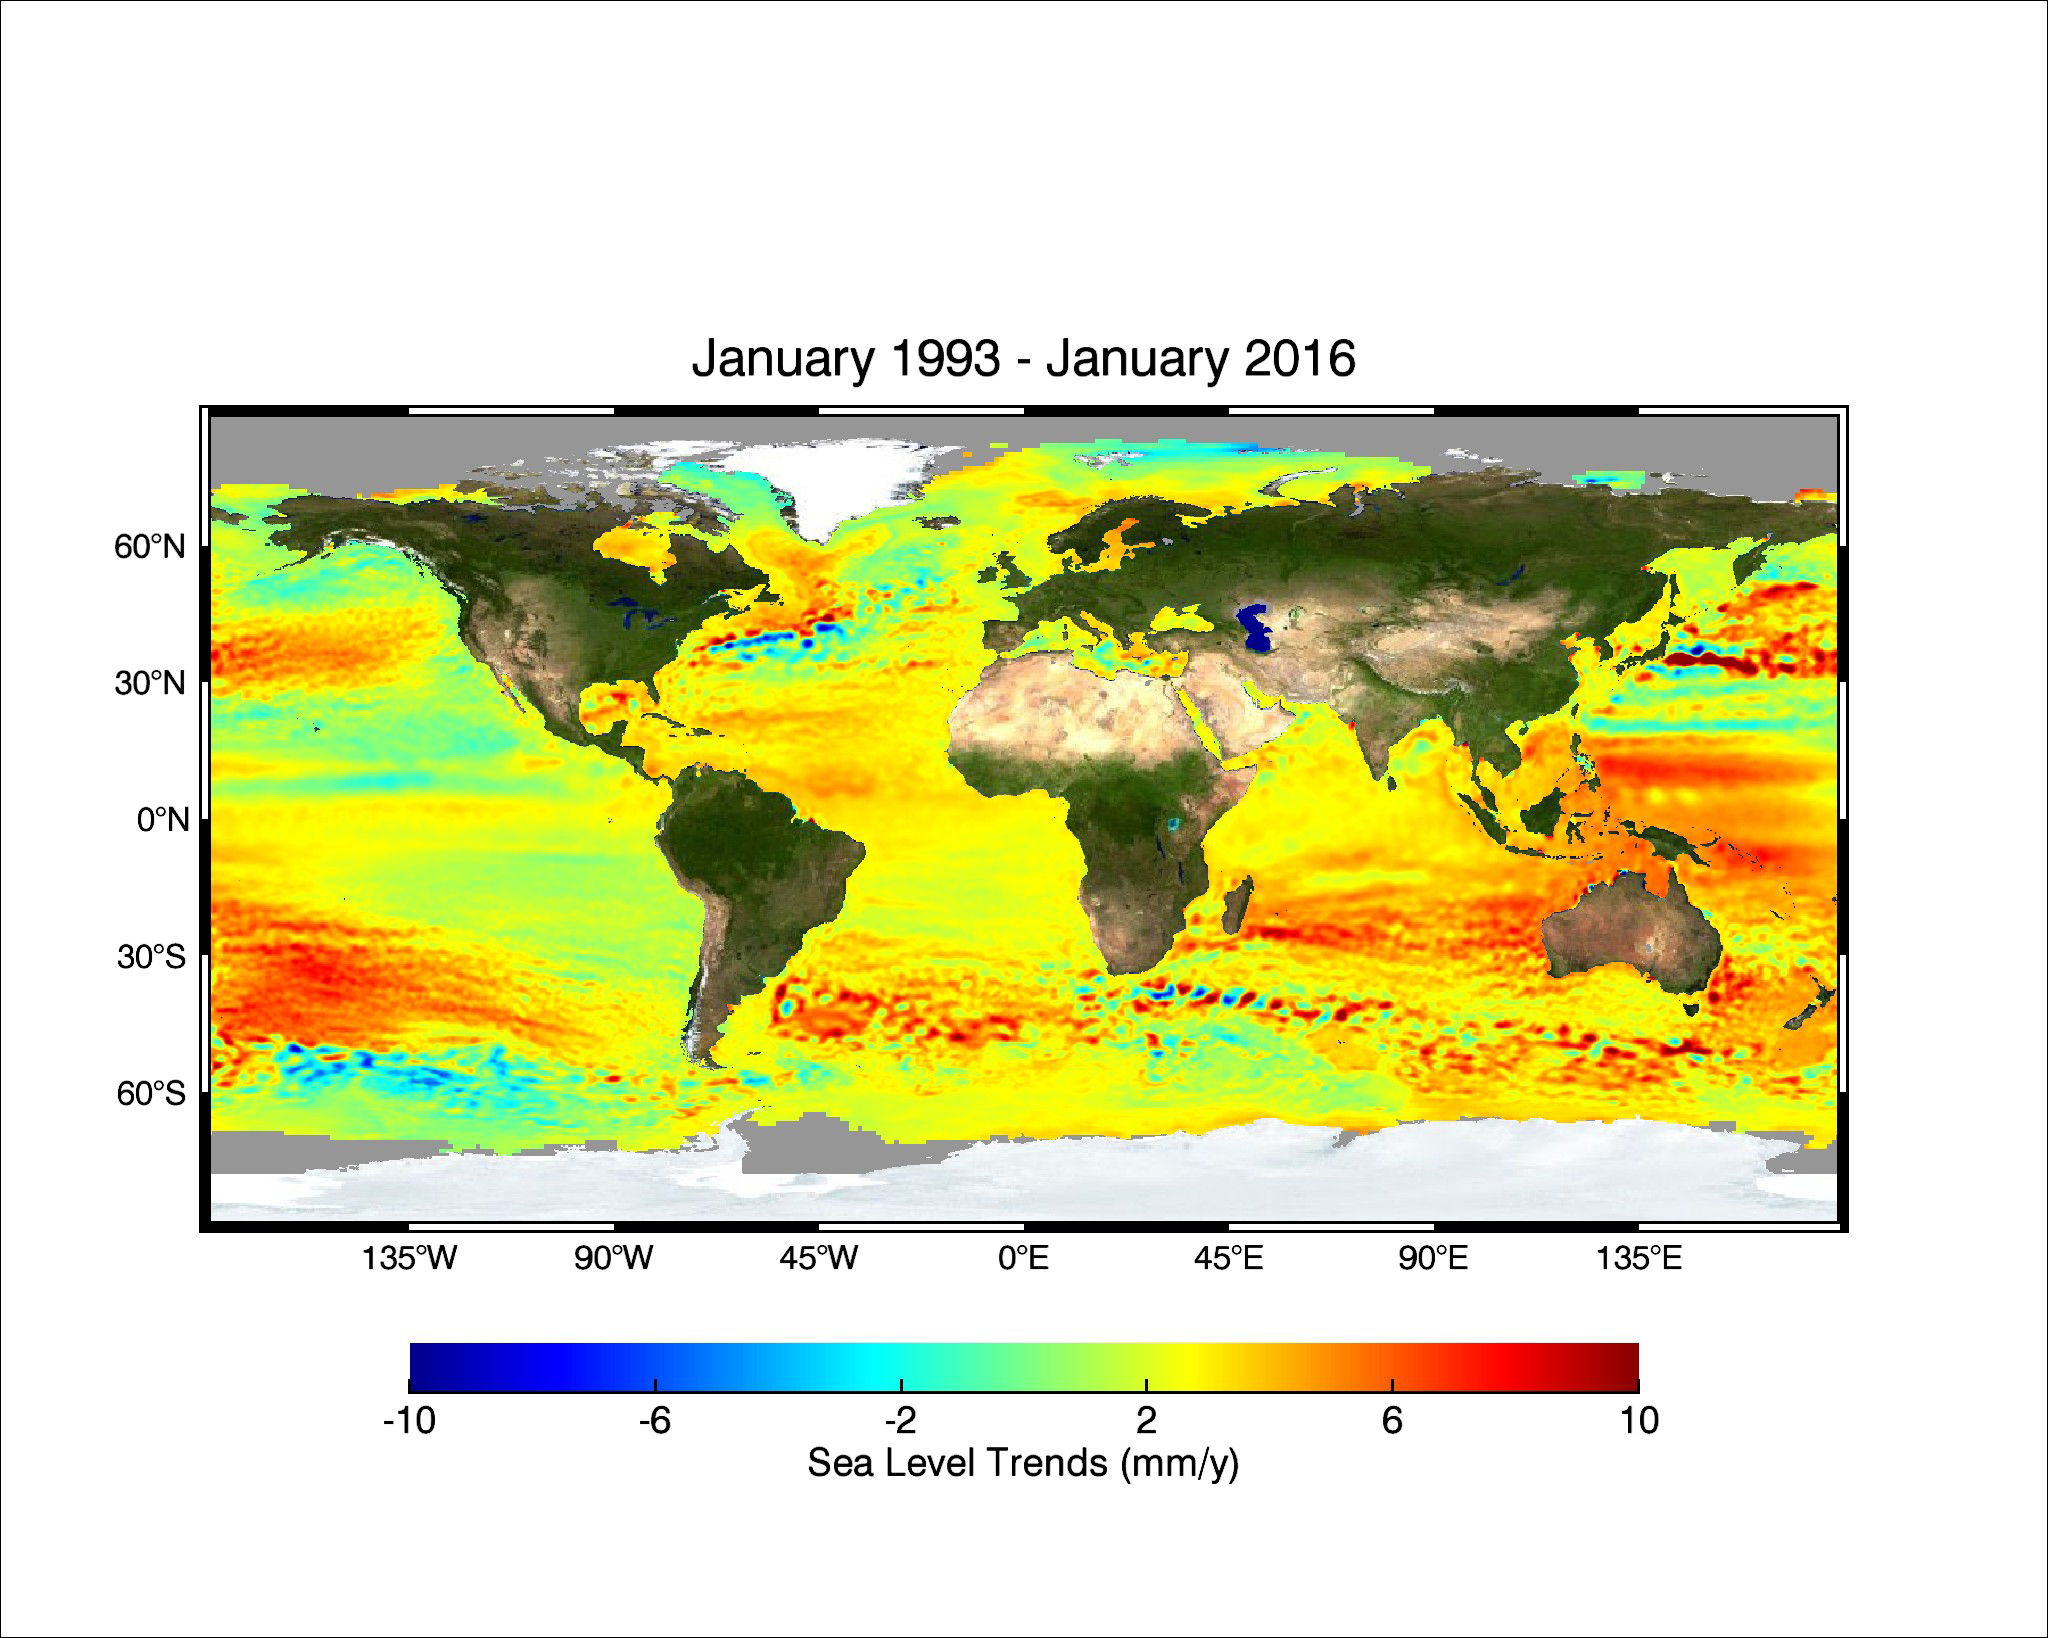 23-year trend of rising seas across the globe from 1993 to 2016